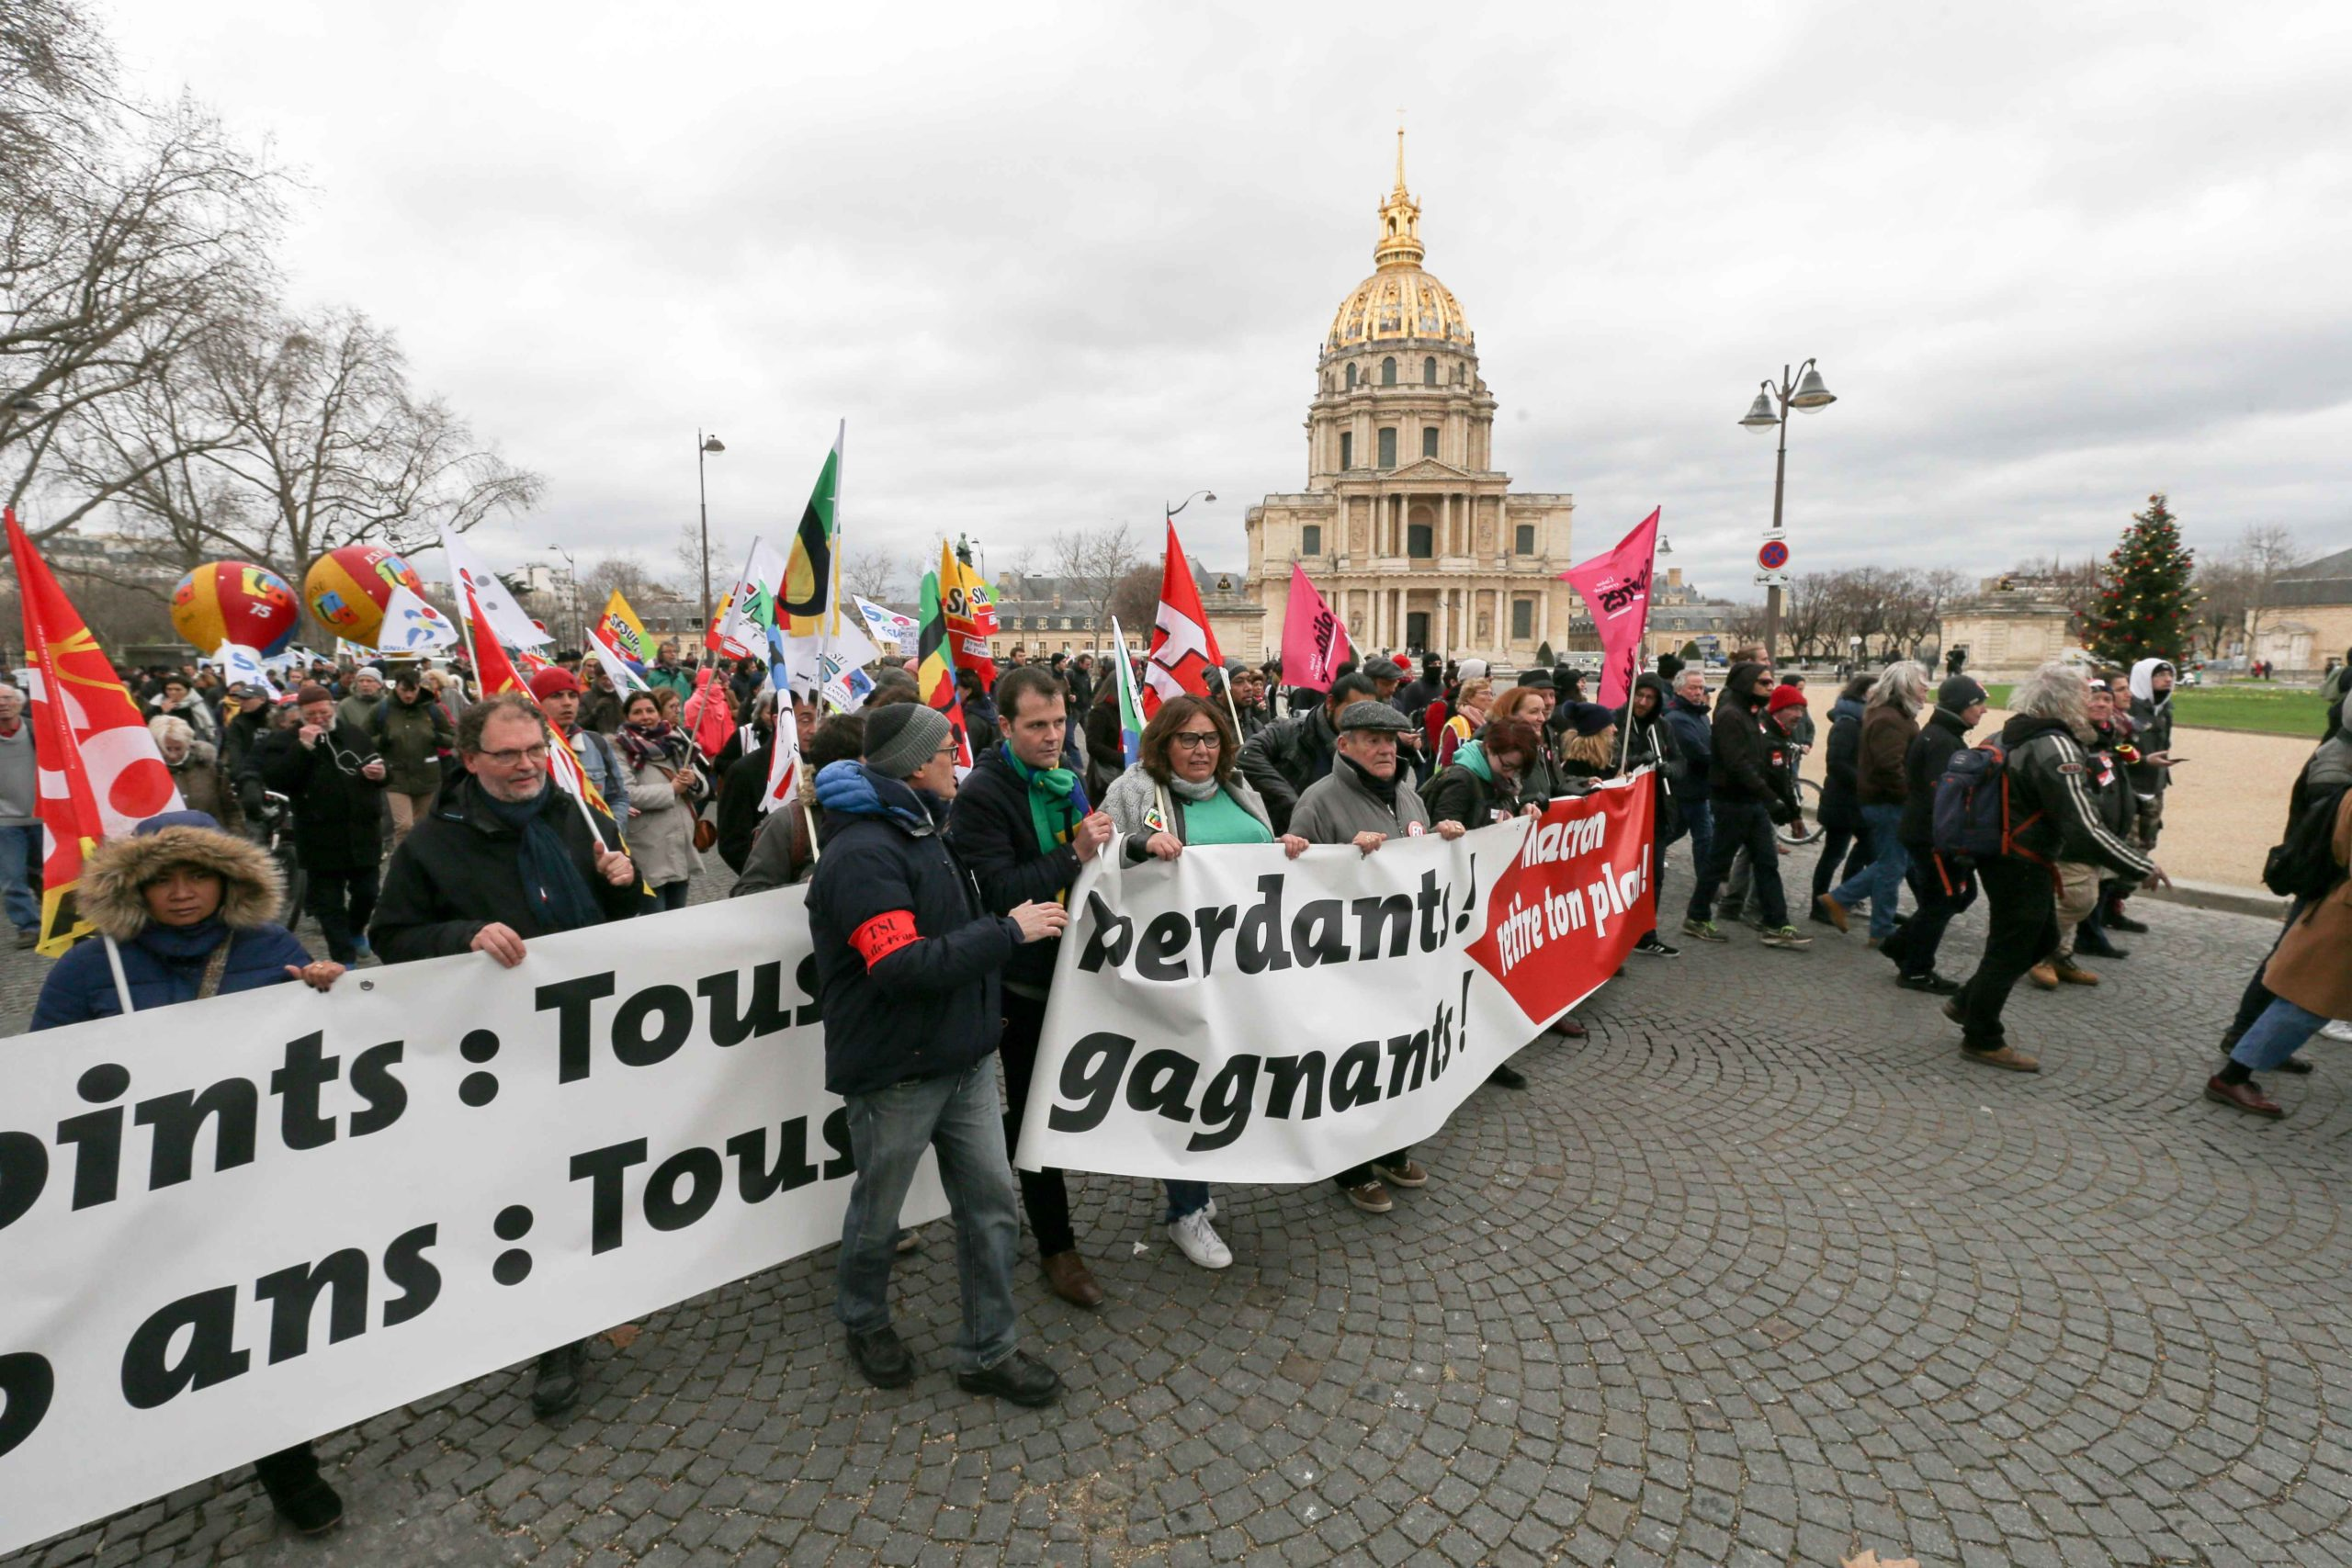 Protesters take part in a demonstration in front the Dôme des Invalides in Paris on January 14, 2020, as part of a nationwide multi-sector strike against the French government's pensions overhaul.A transport strike dragged on into its 41st day on January